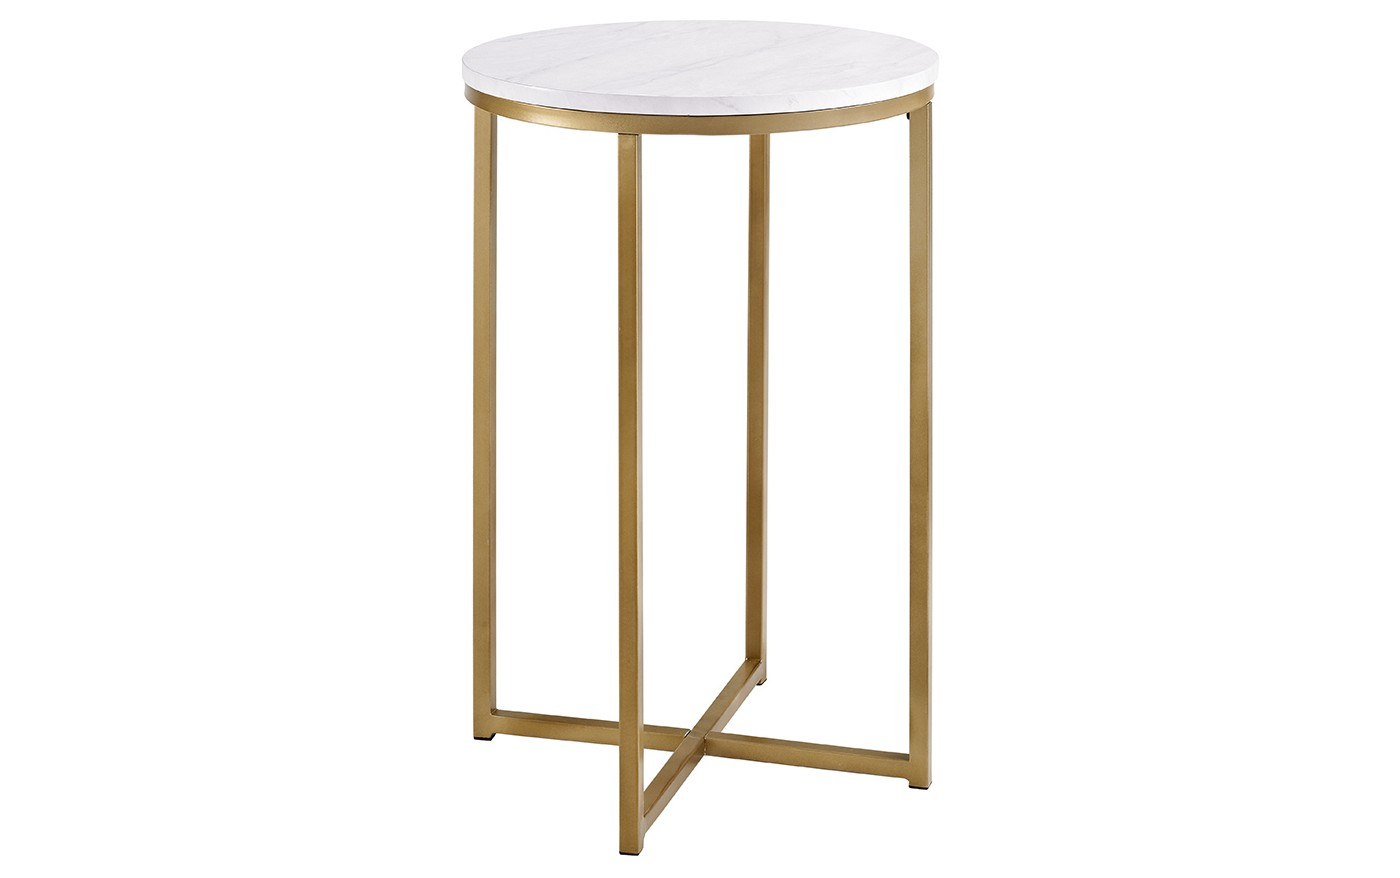 end tables target home that upgrade your living tachuri accent table room for less than bar with ice bucket wood steel coffee rustic metal piece set center and side inexpensive